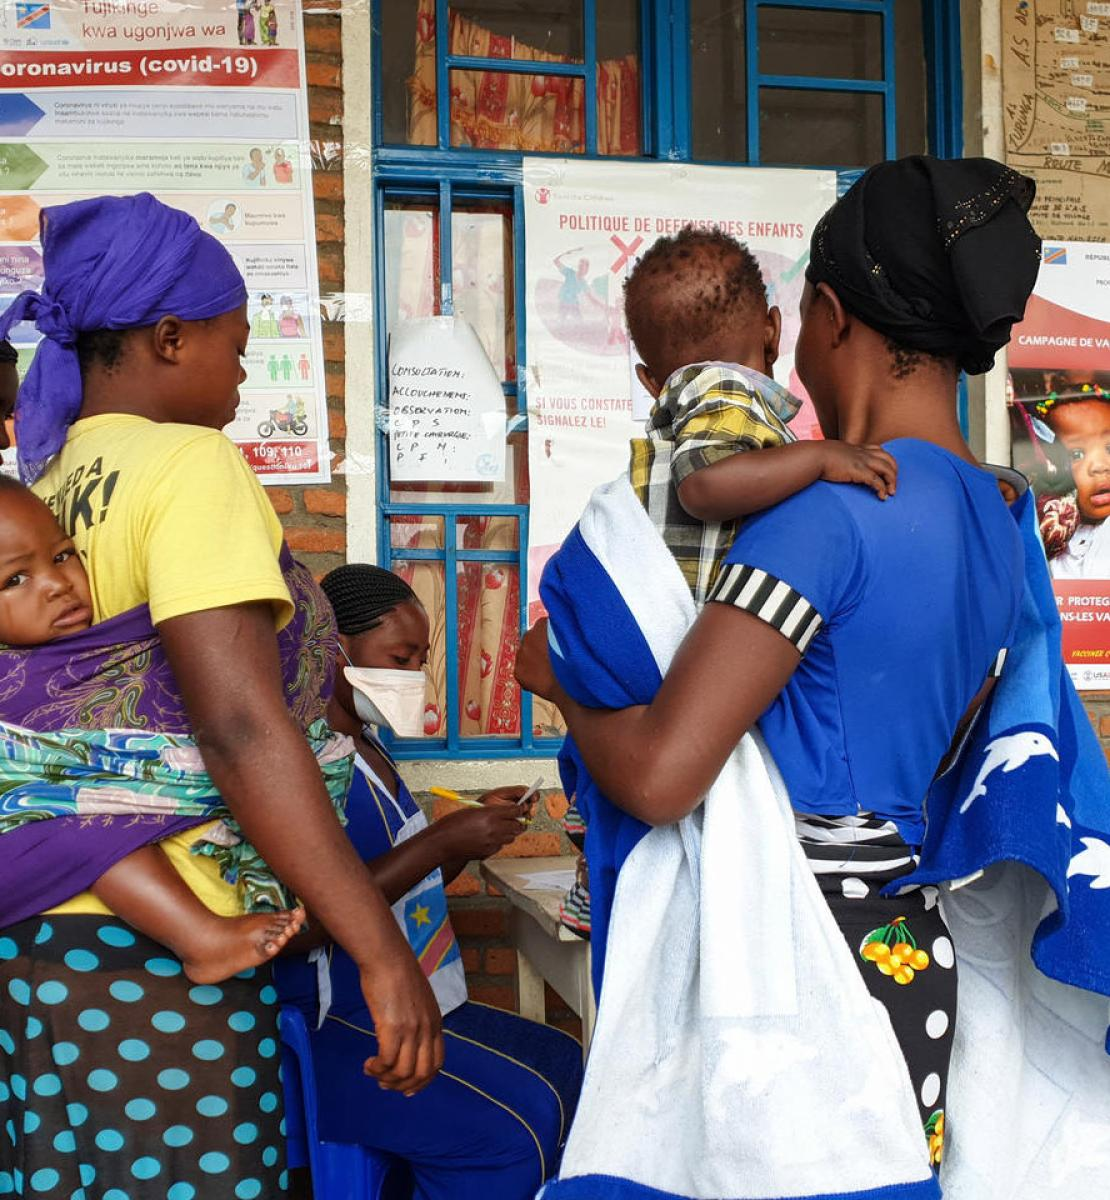 Women with their babies stand outside a medical facility reading signage on COVID and vaccinations.